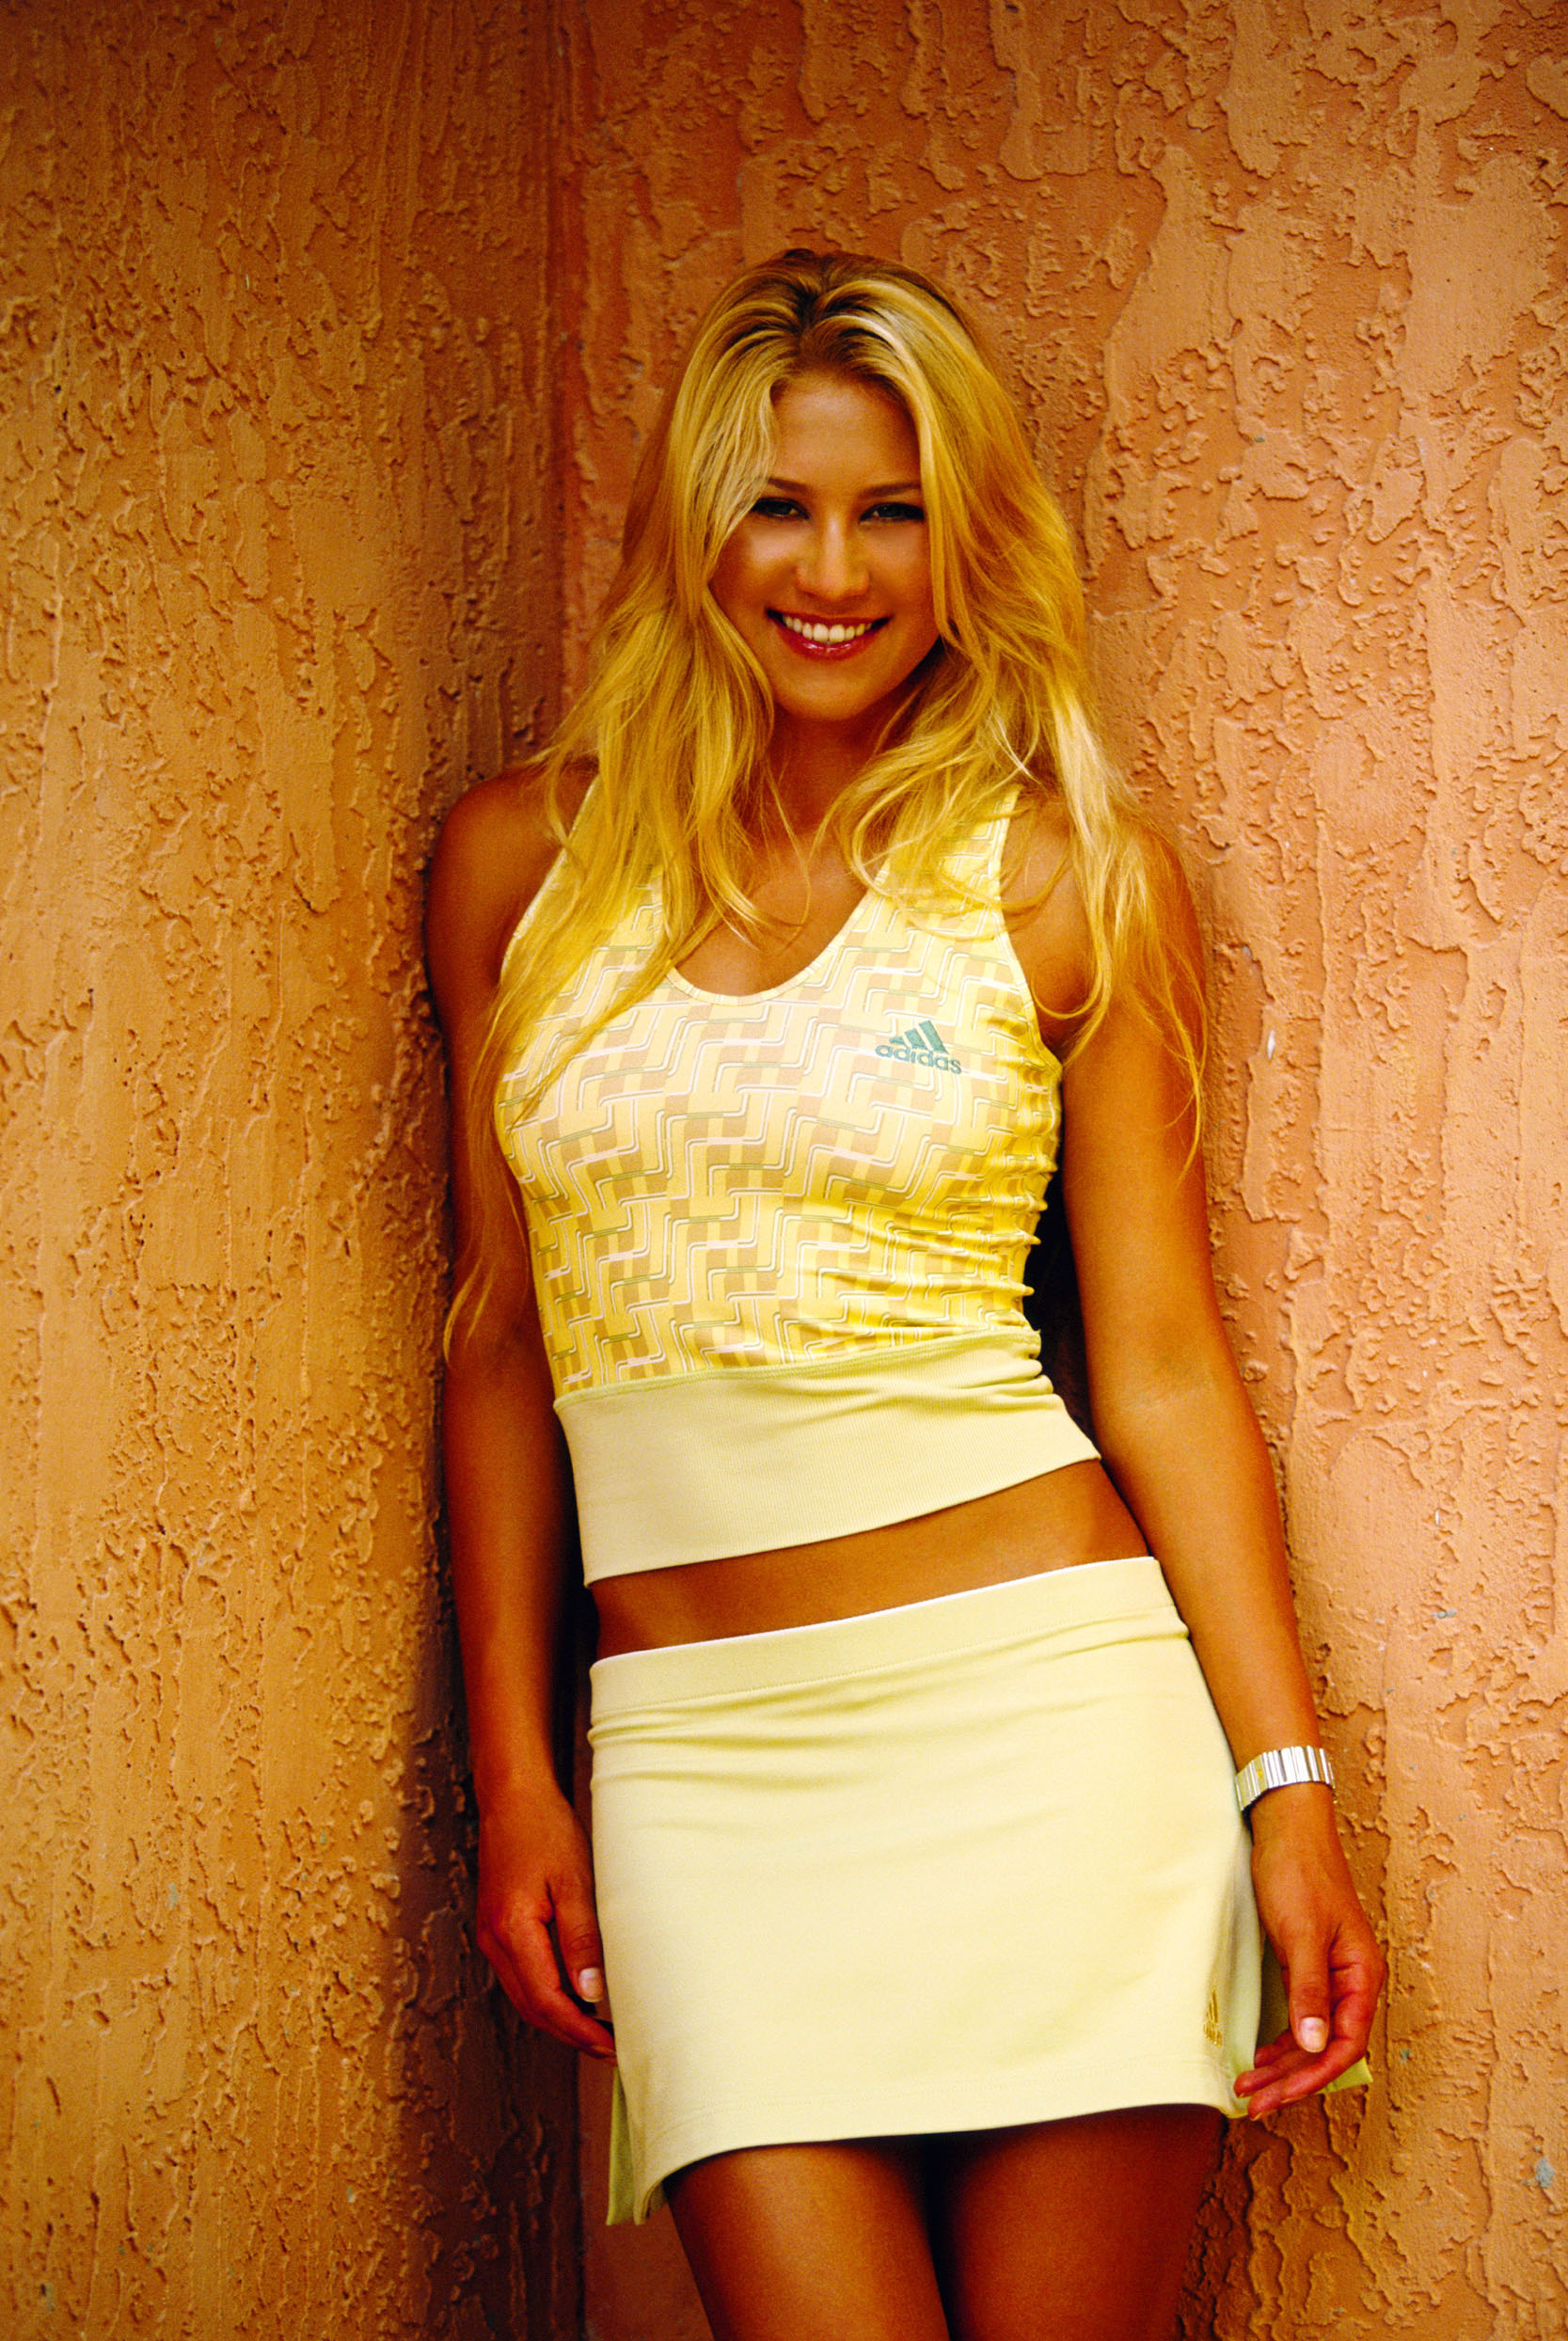 Think, that Anna kournikova breast size